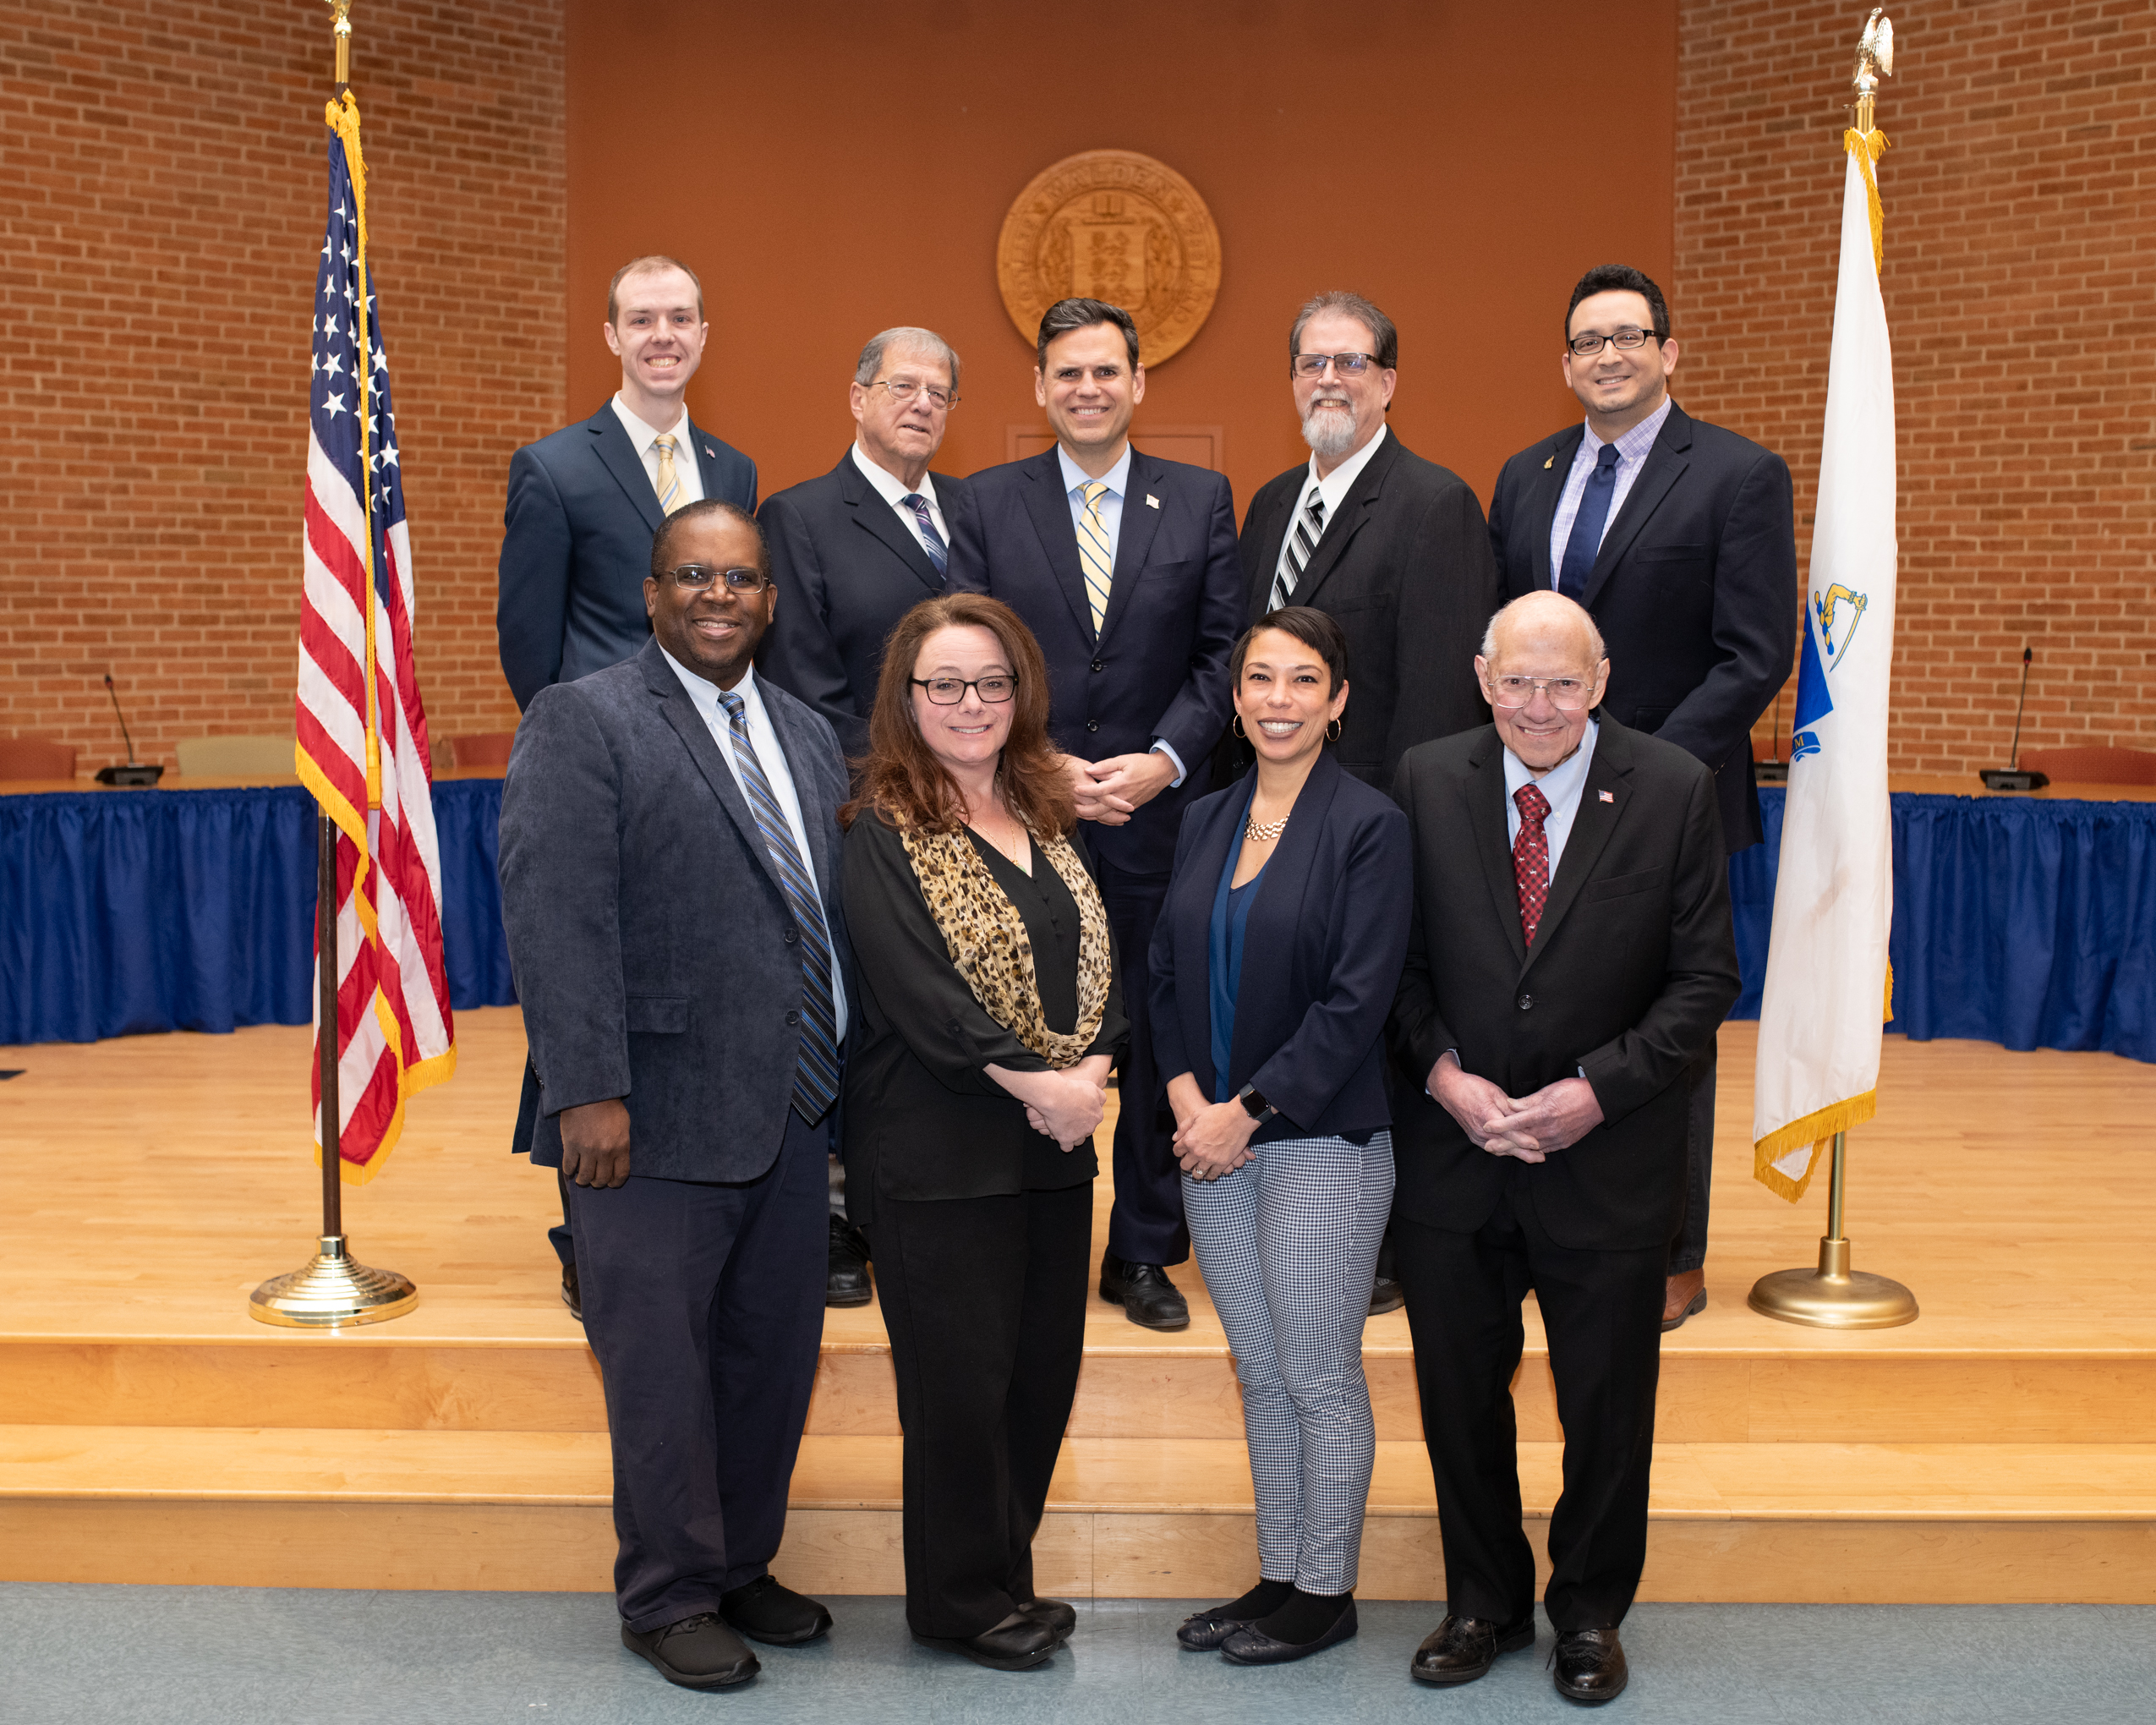 2020/2021 Malden School Committee